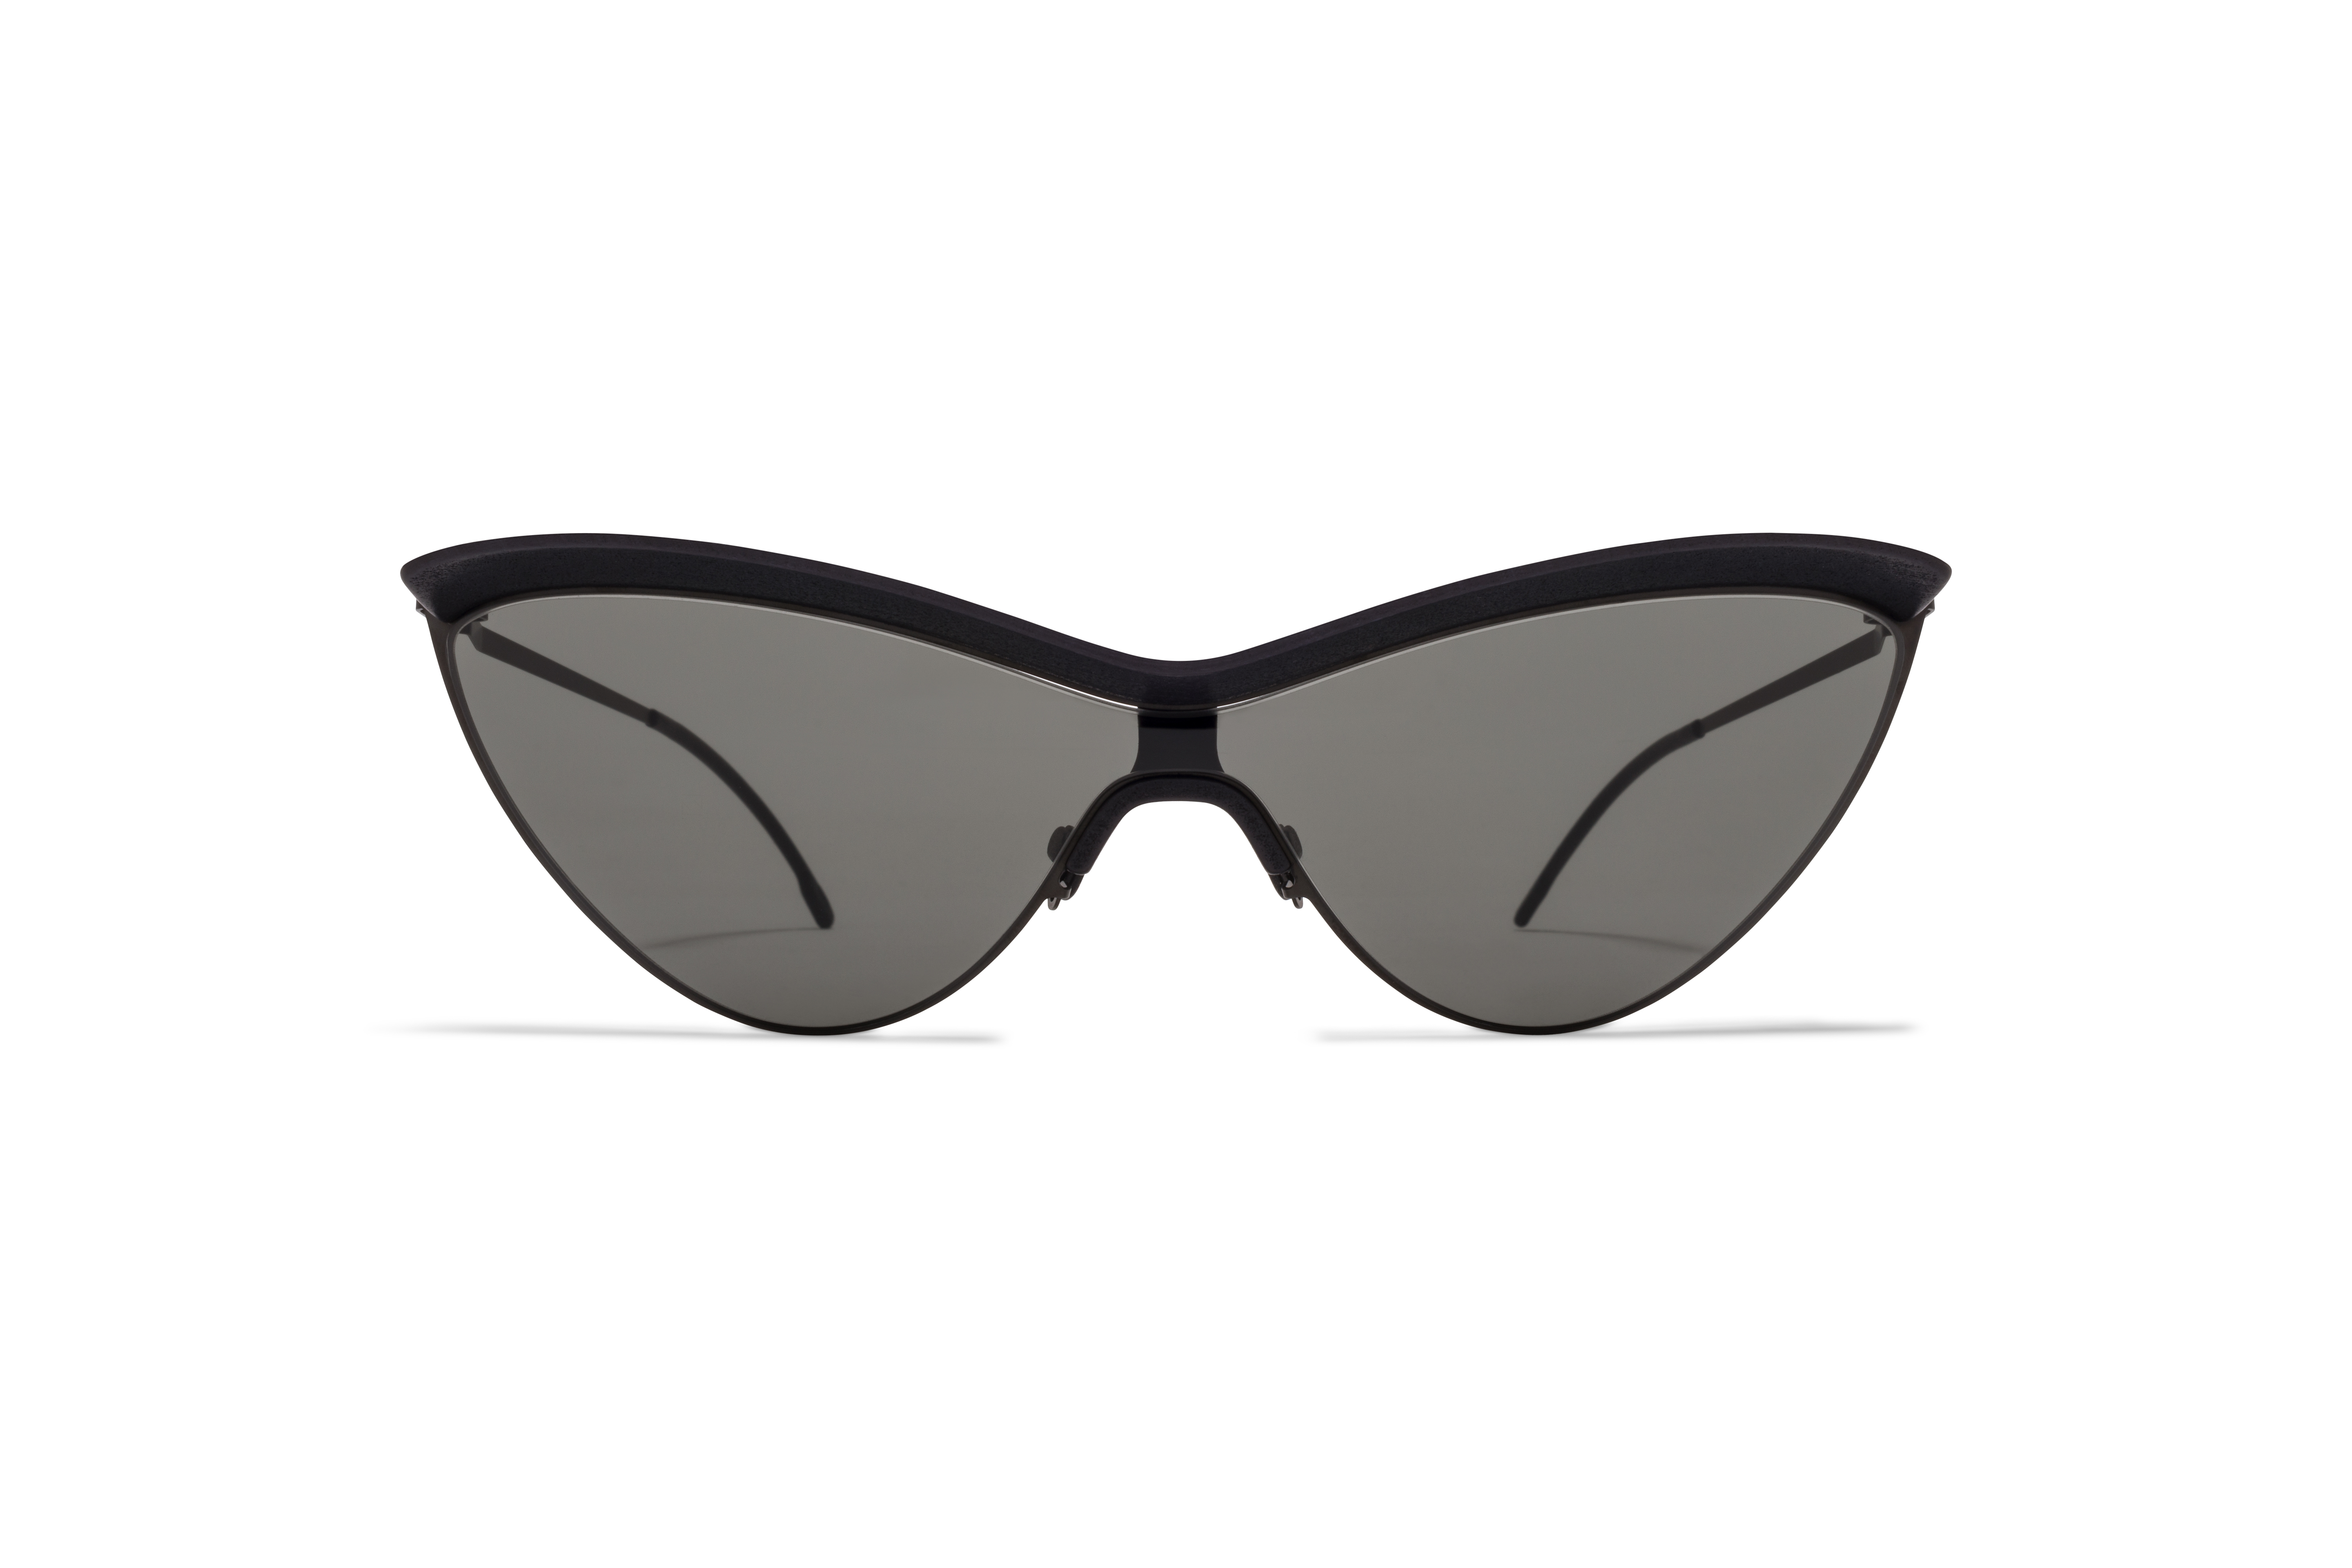 MYKITA Mm Sun Mmecho002 Mh6 Pitch Black Black Dark Grey Solid Shield